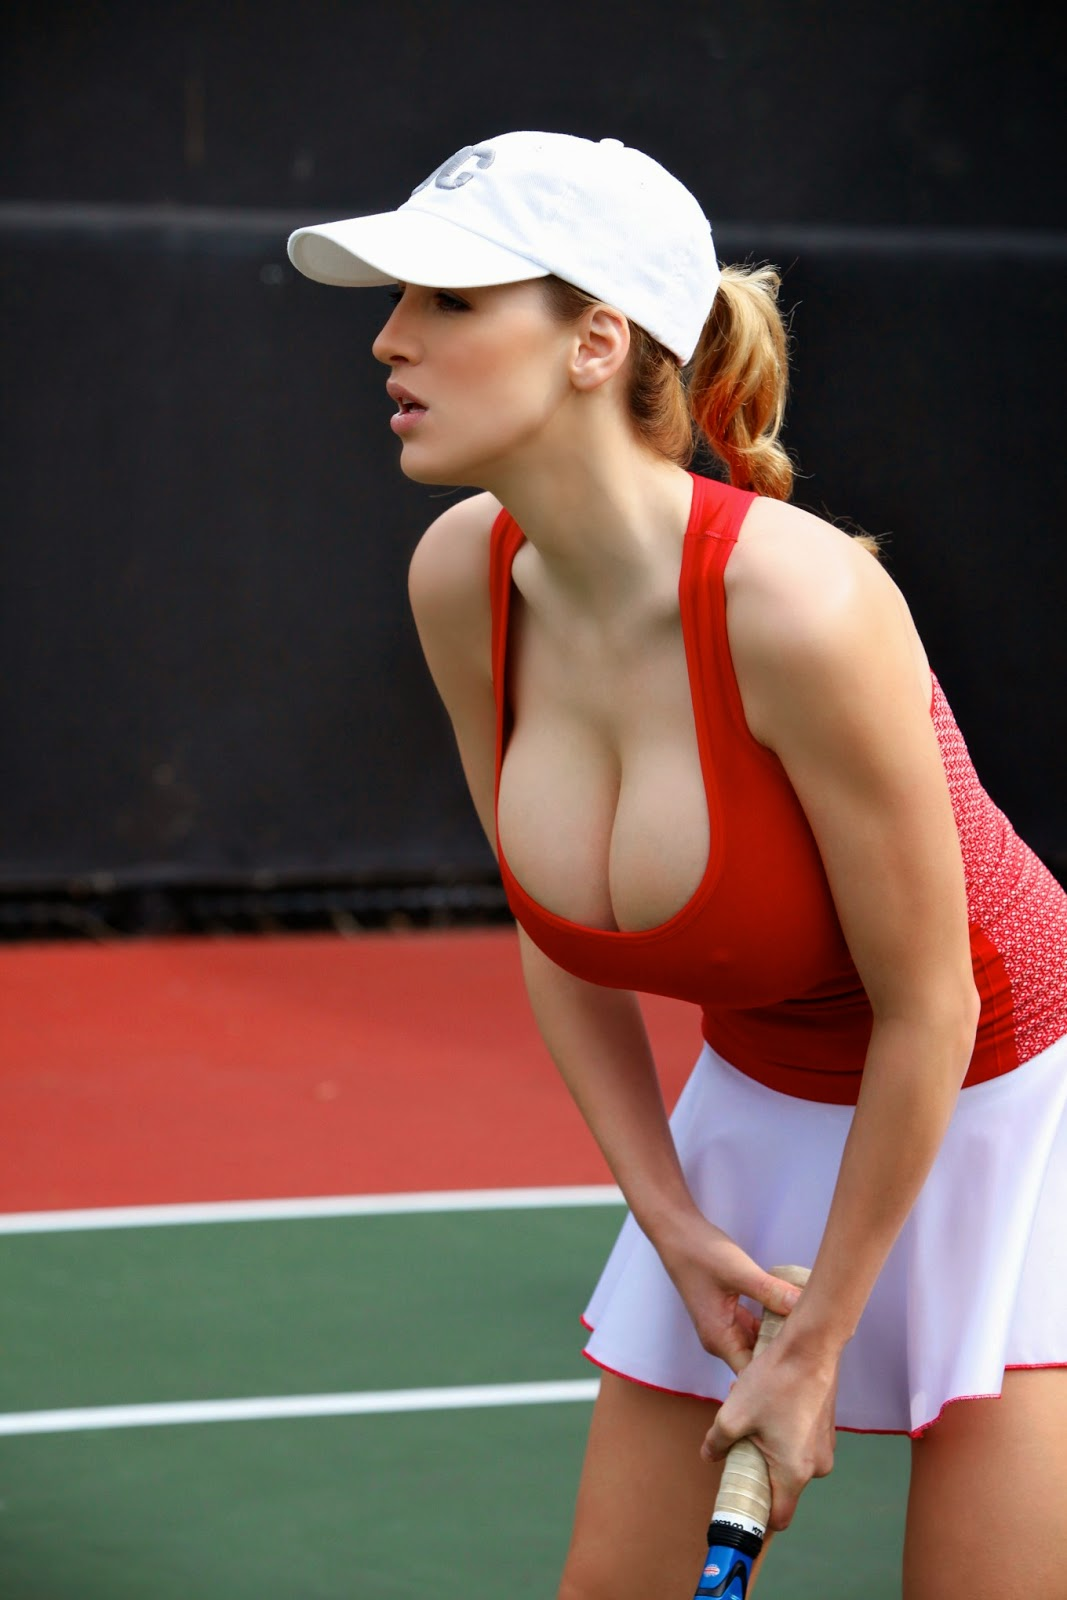 Big tits playing tennis